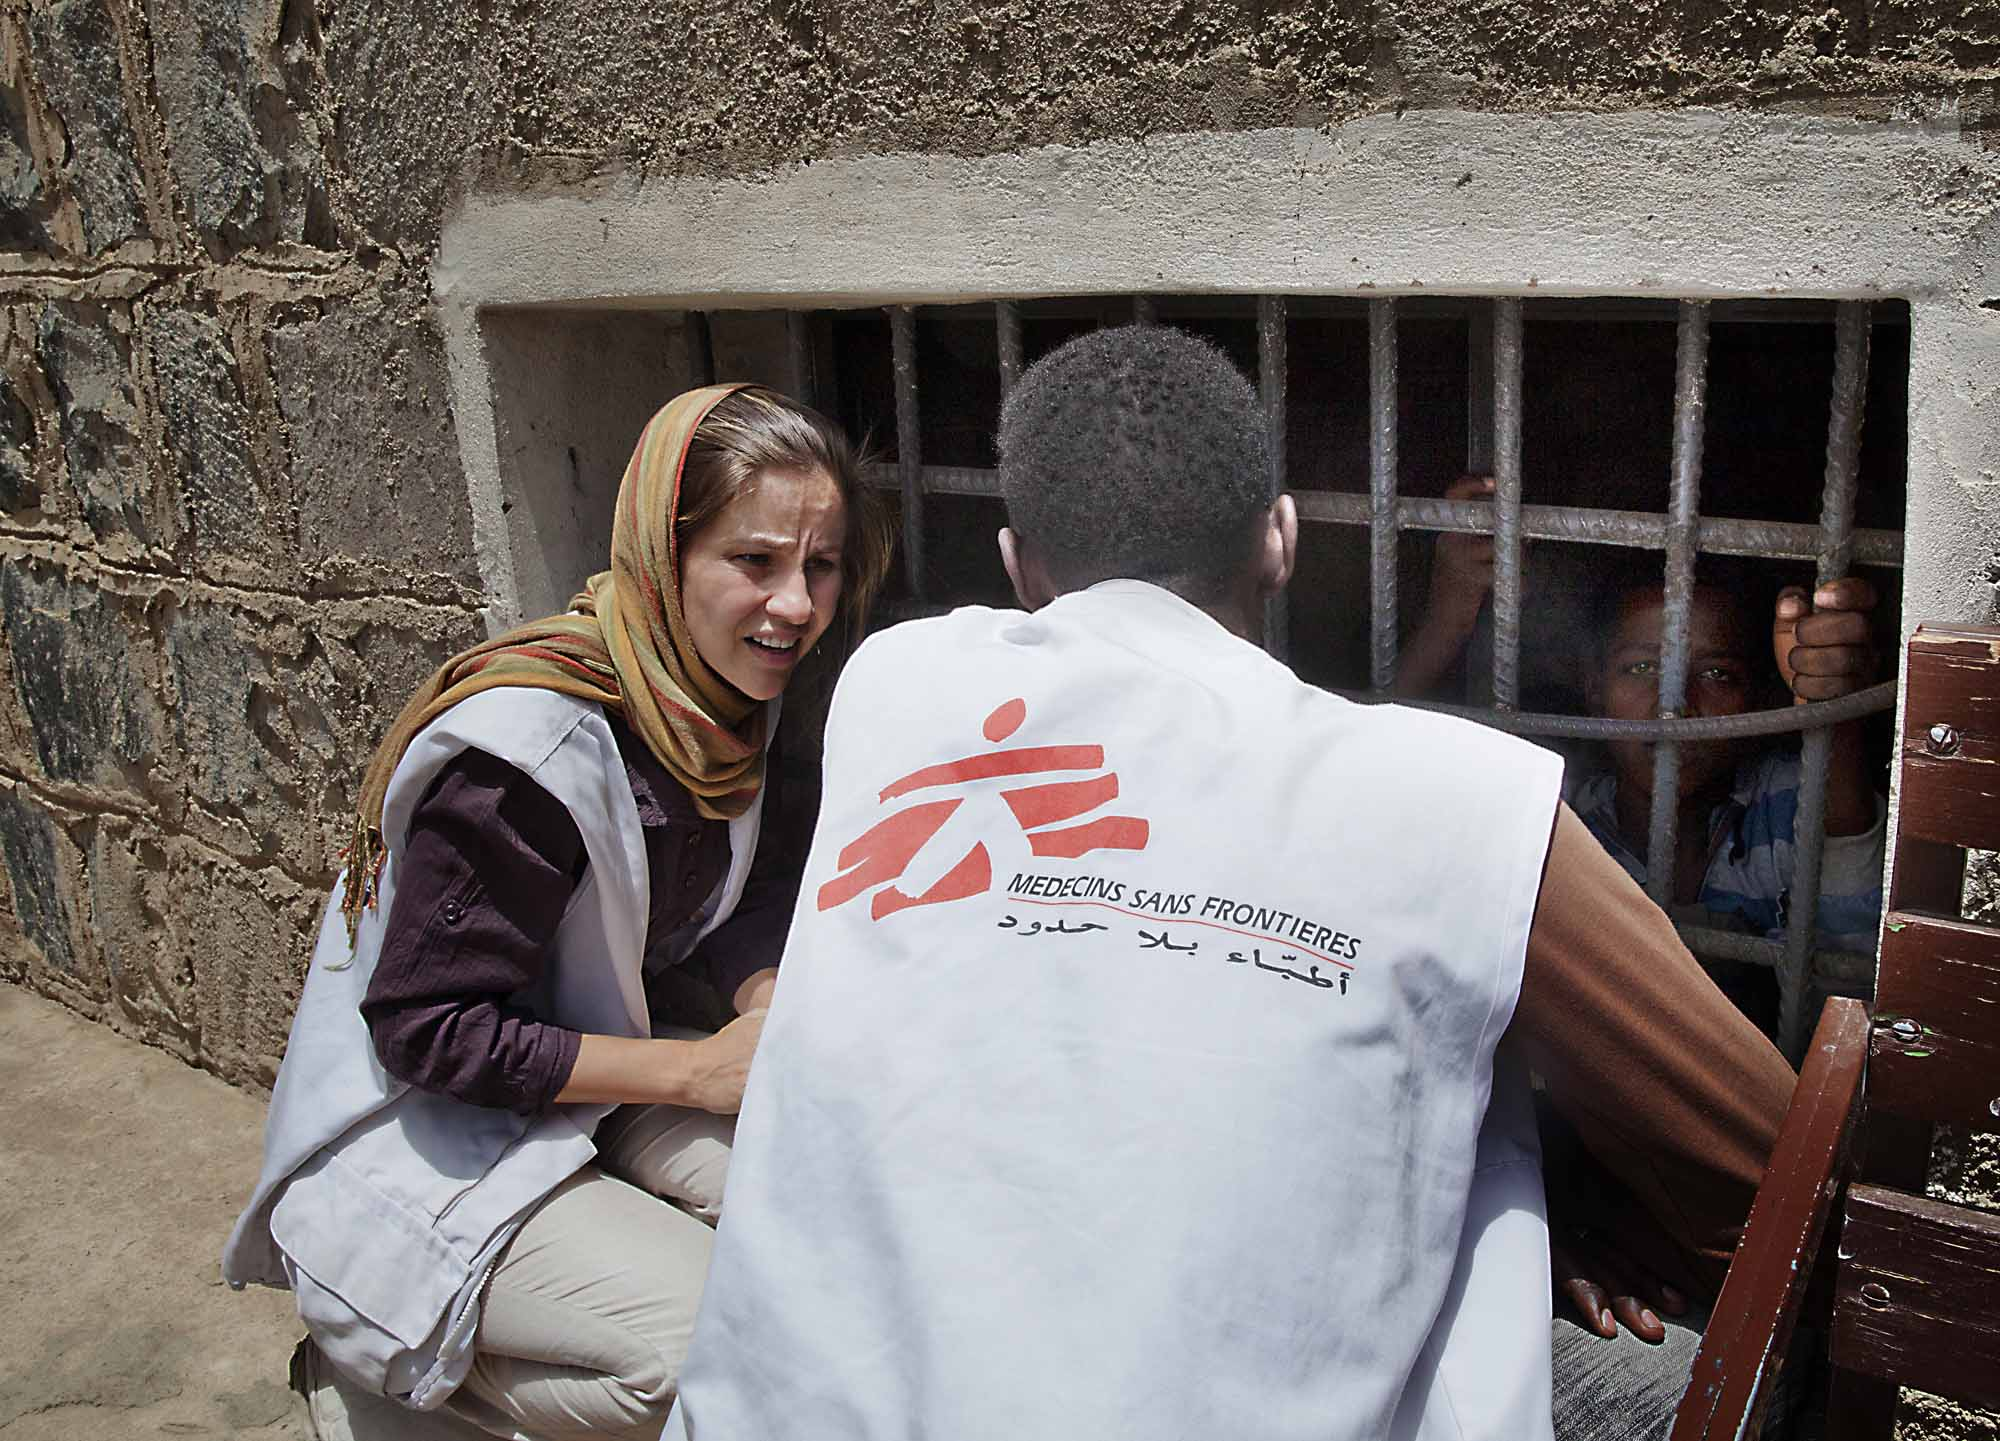 Update from MSF in Yemen – Urgent need for humanitarian assistance and aid supplies